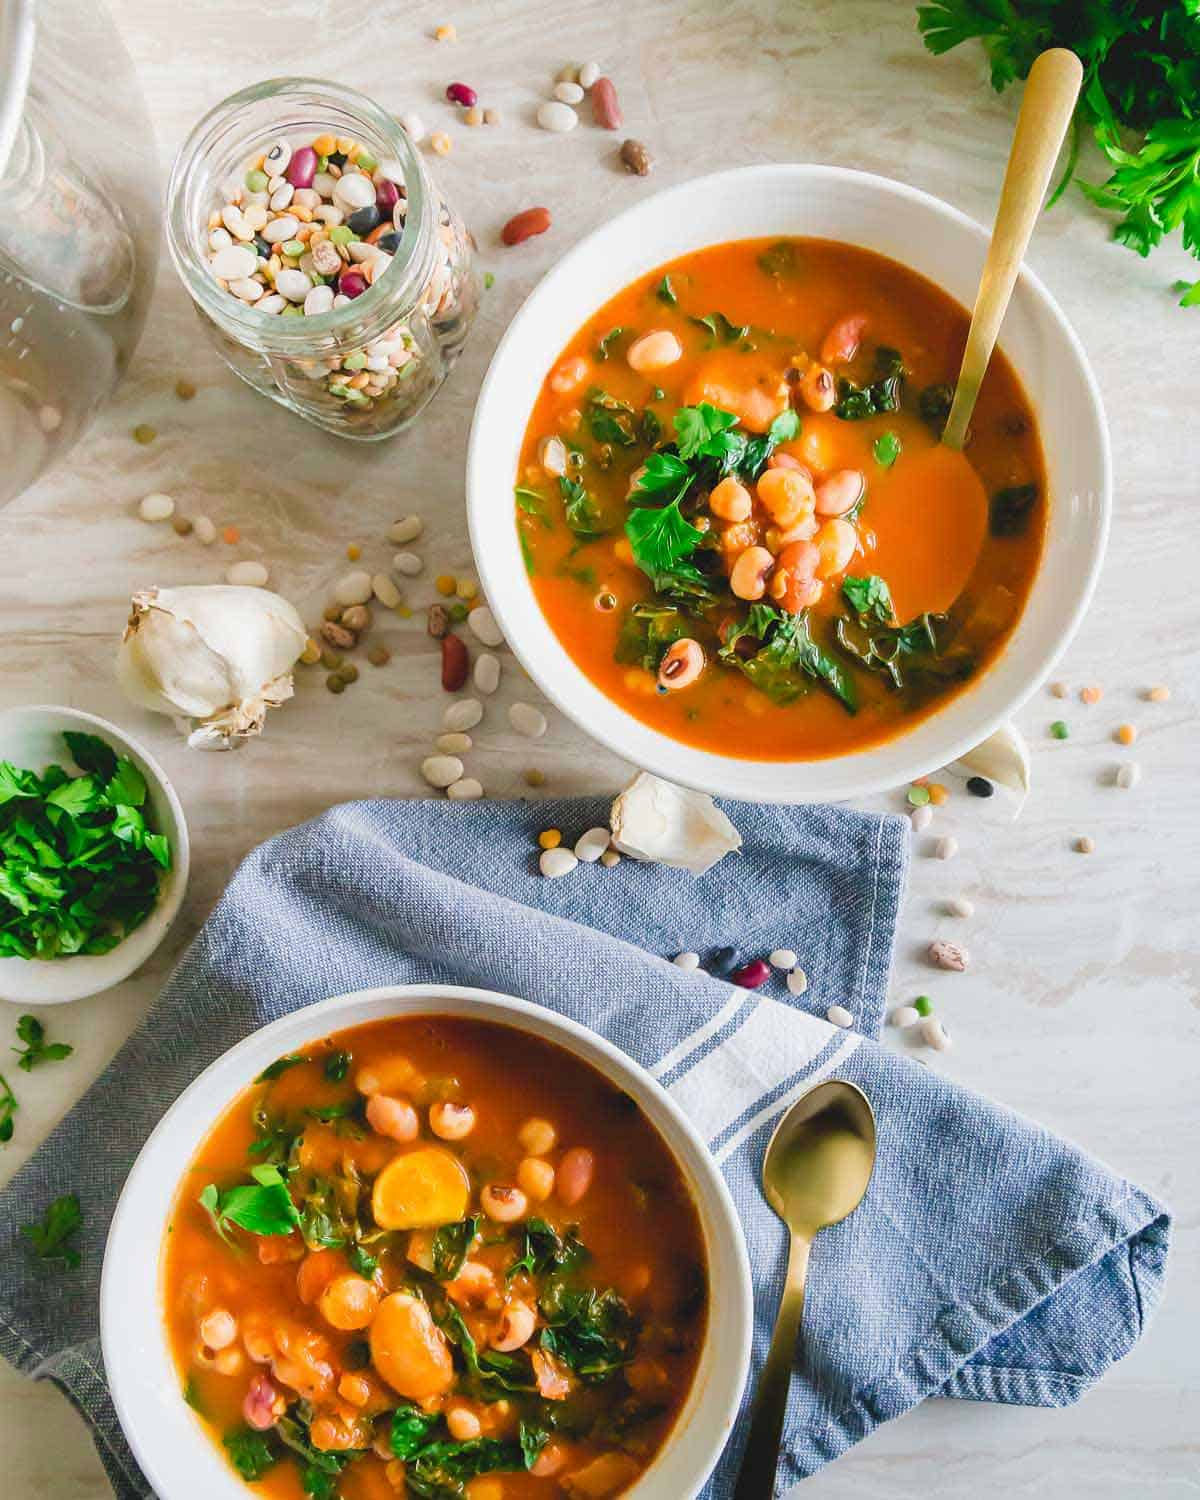 13 bean and lentil mixed soup made in the Instant Pot with kale and a brothy tomato base.